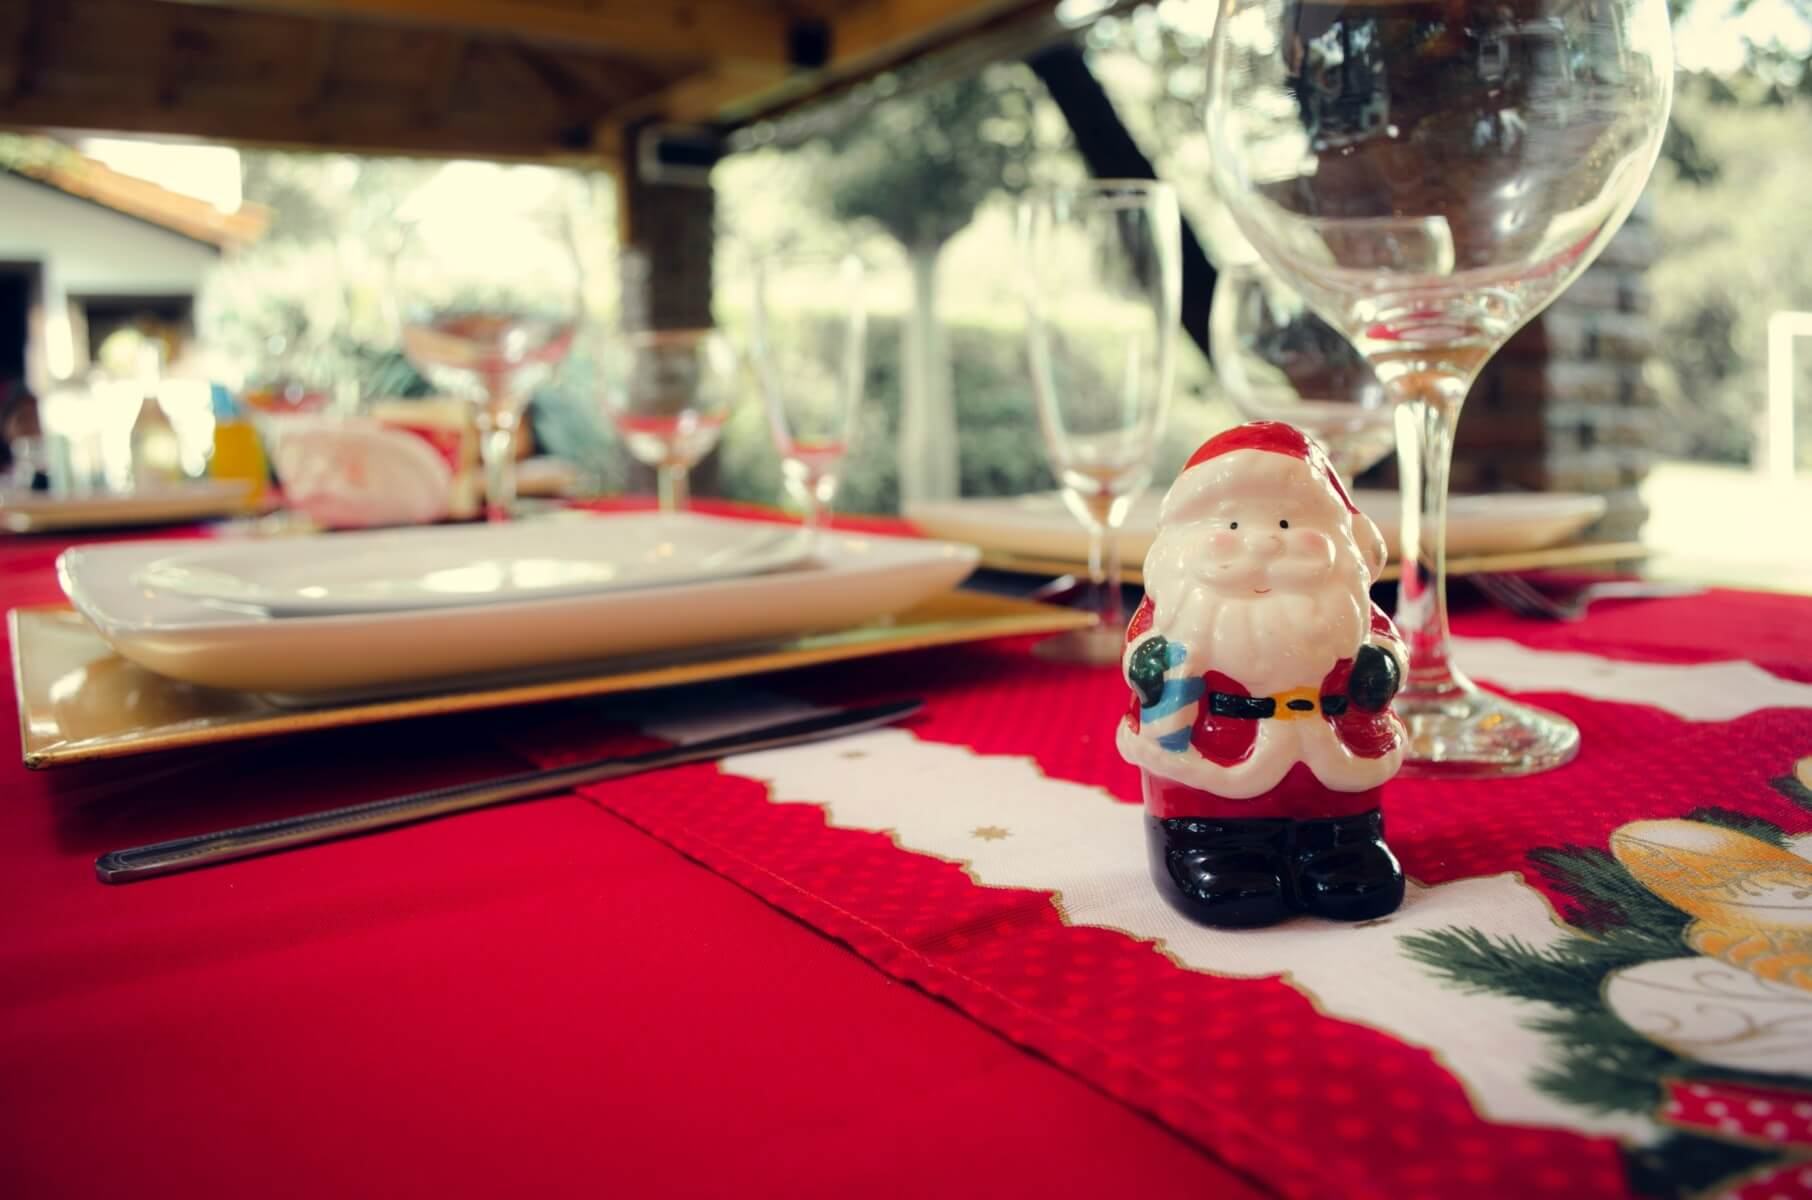 santa-claus-ceramic-figurine-next-to-wine-glasses-and-white-824306